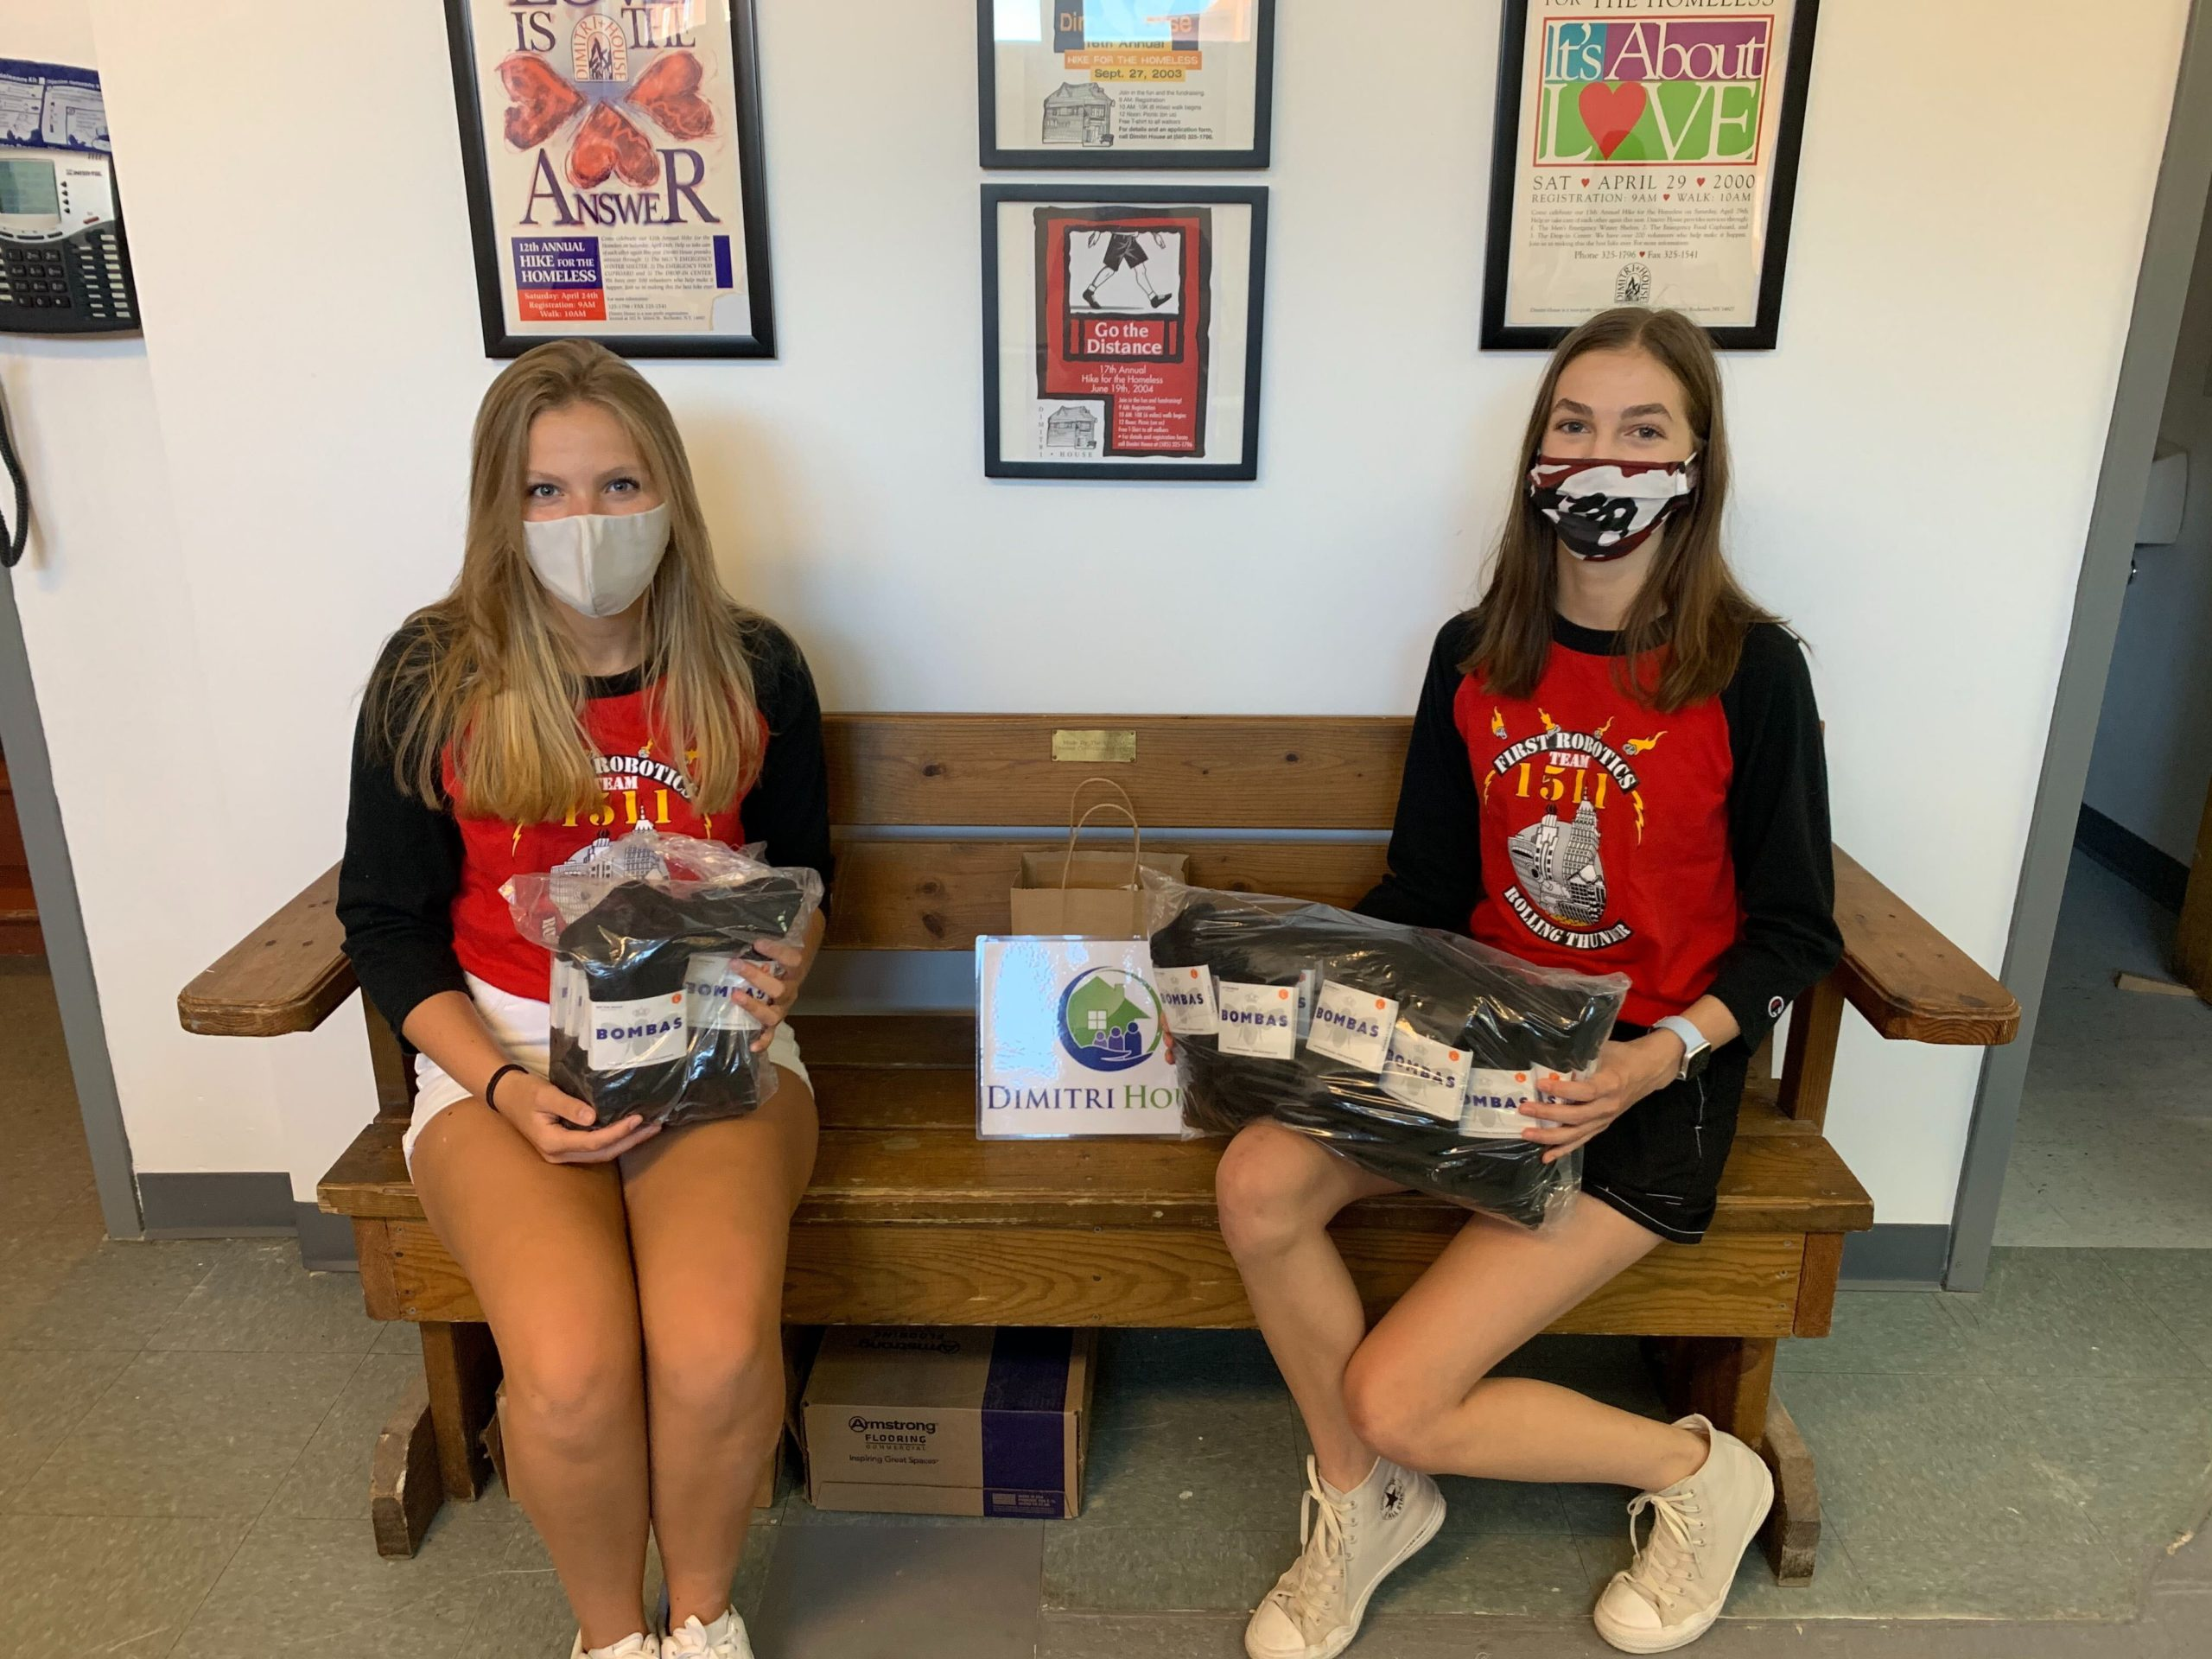 2 students hold packages of Boombas Socks donations at Dimitri House